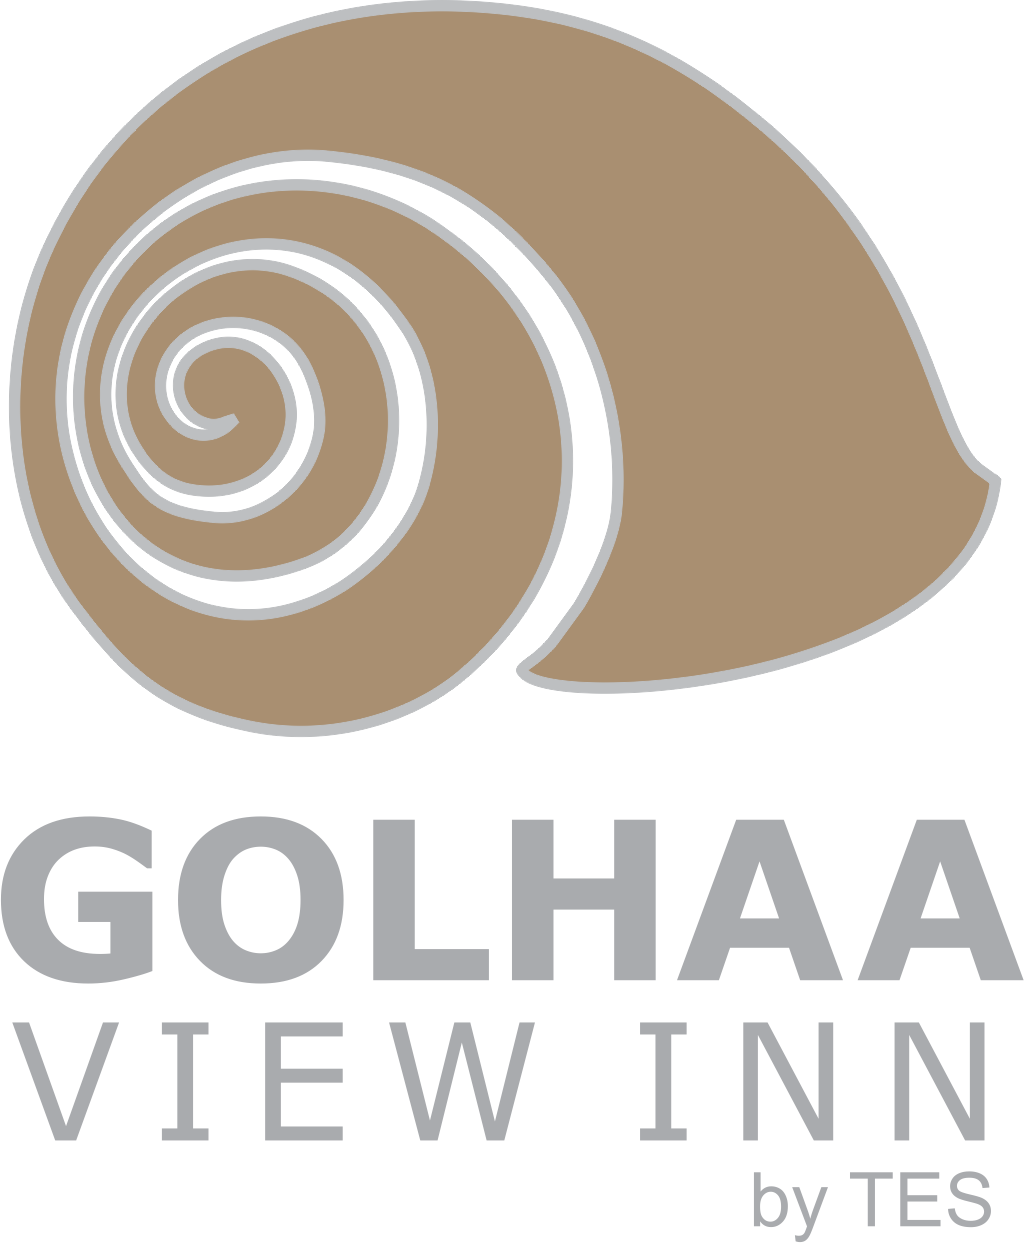 Golha View Inn